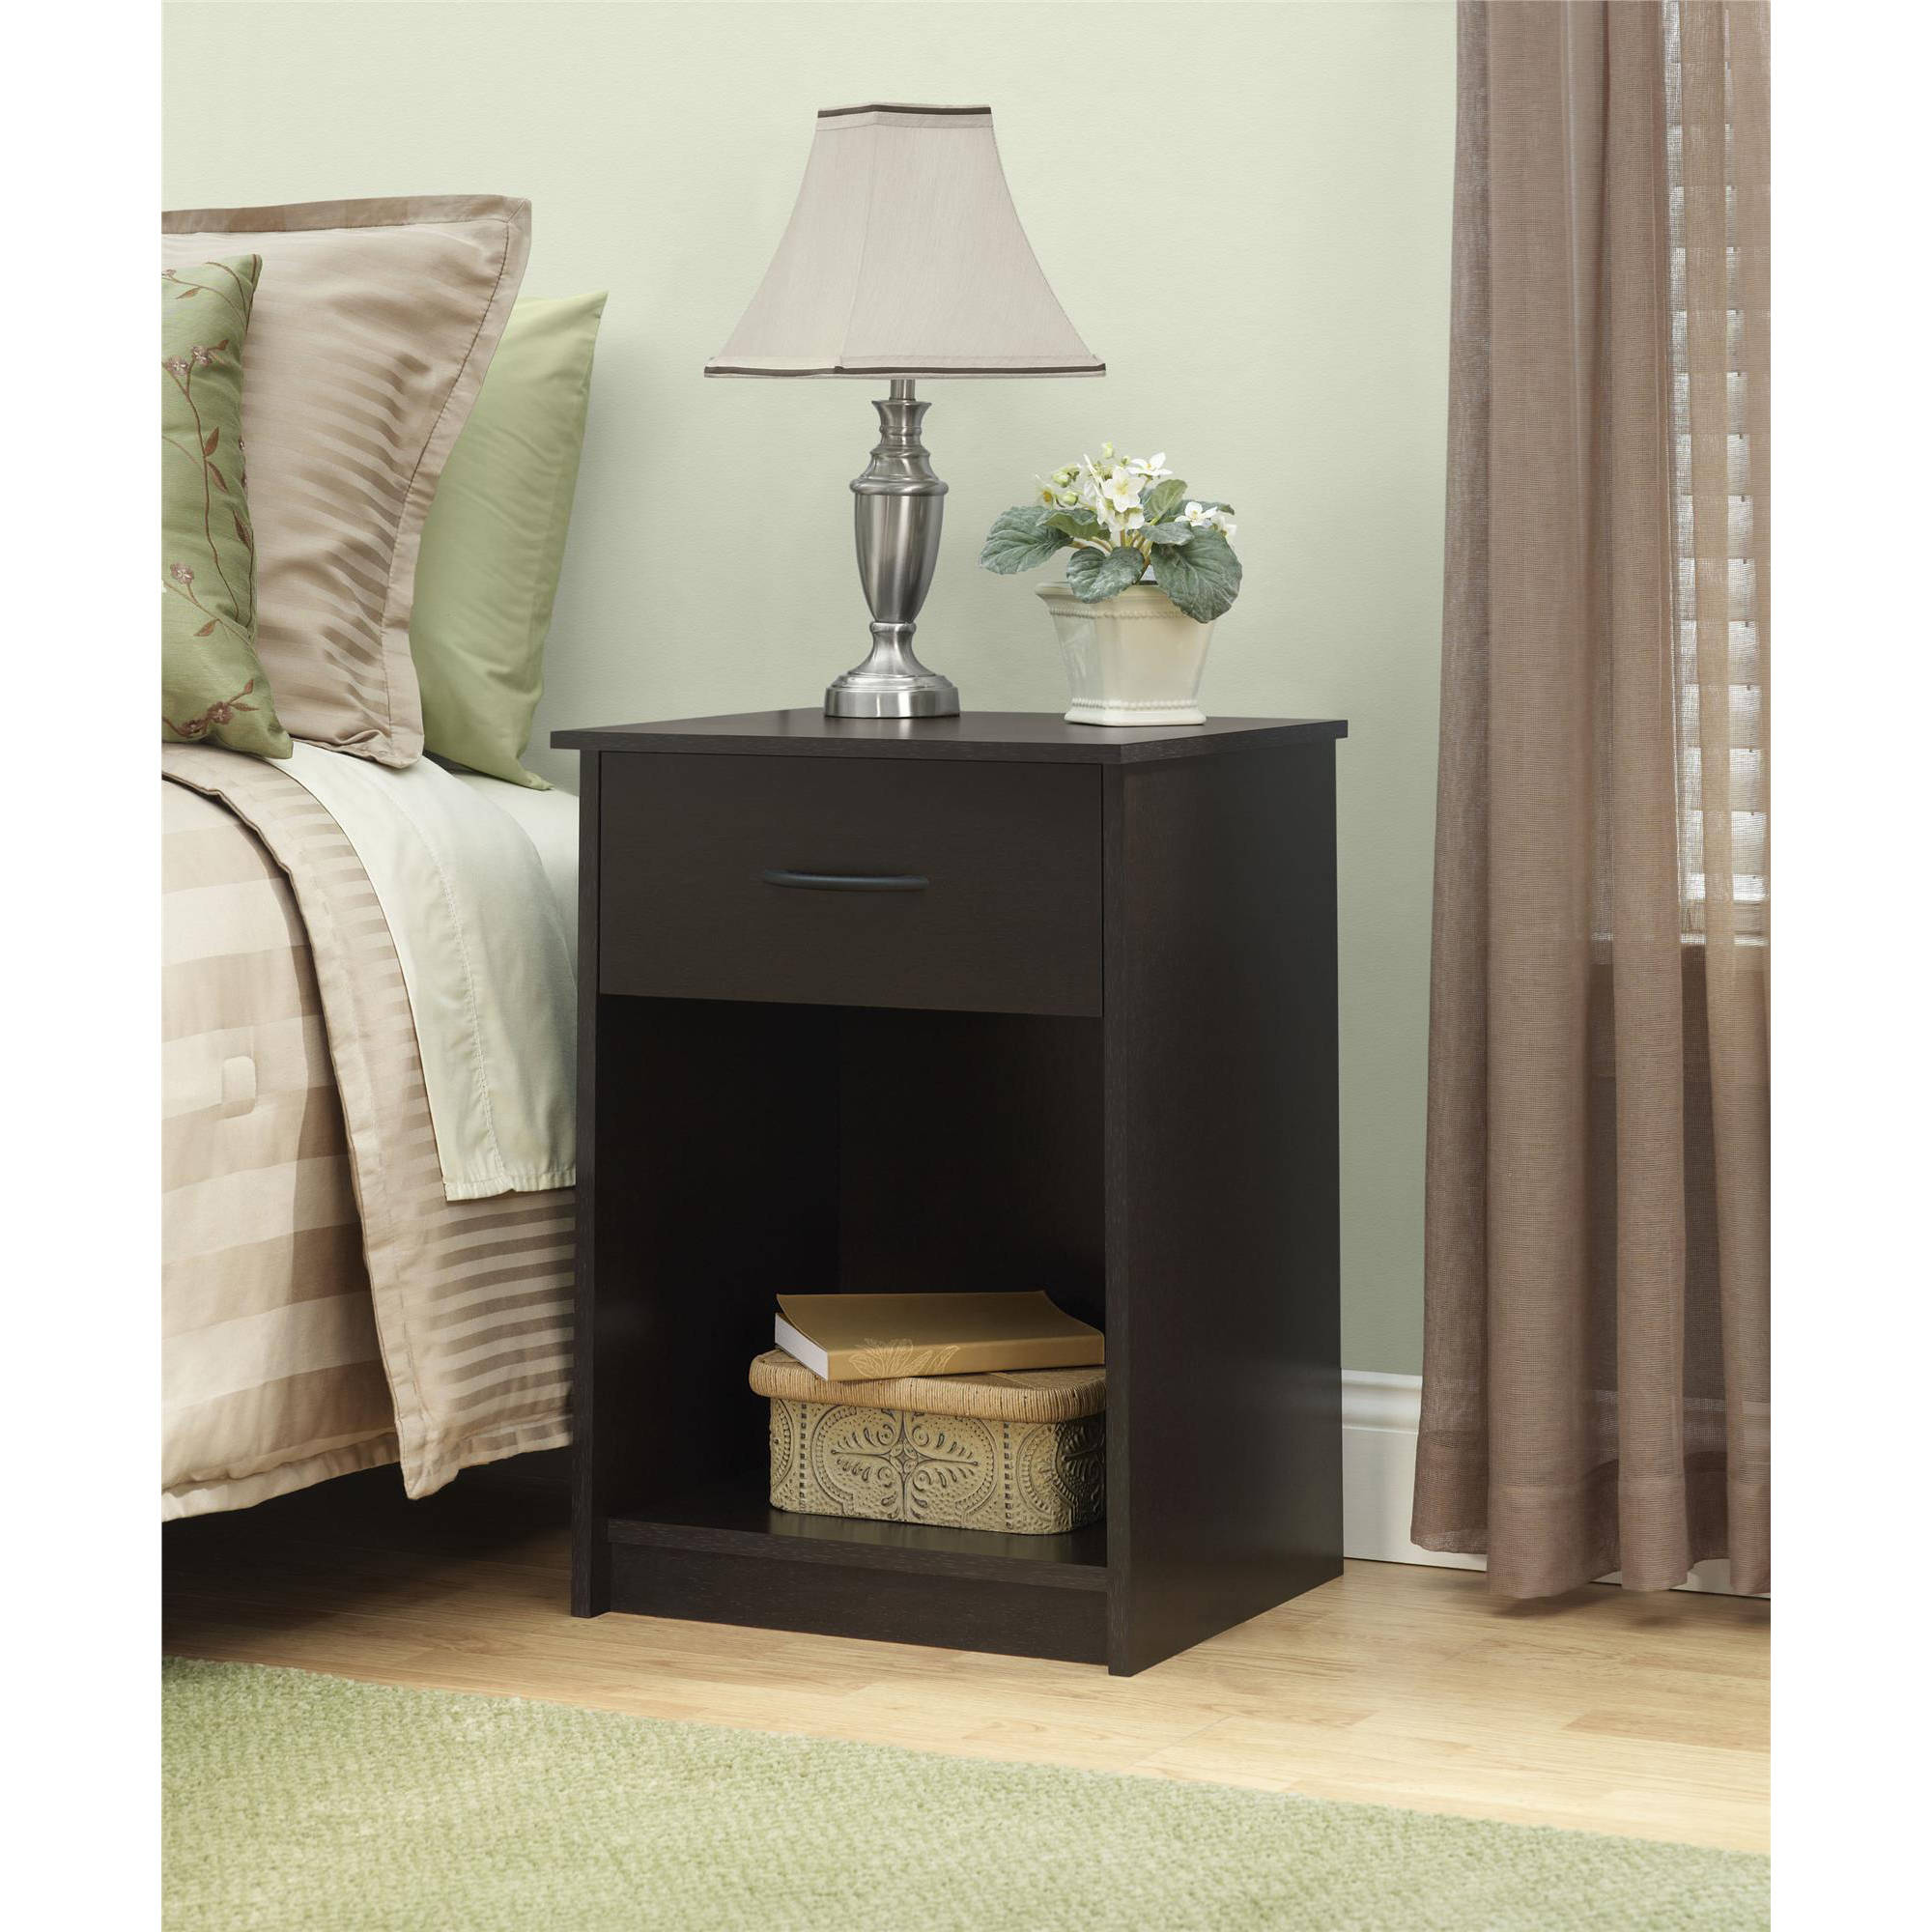 mainstays drawer nightstand end table black ebony ash dvd storage trunk target ashley leather sofa set circle dining room half side oval accent white appliances farmhouse decor